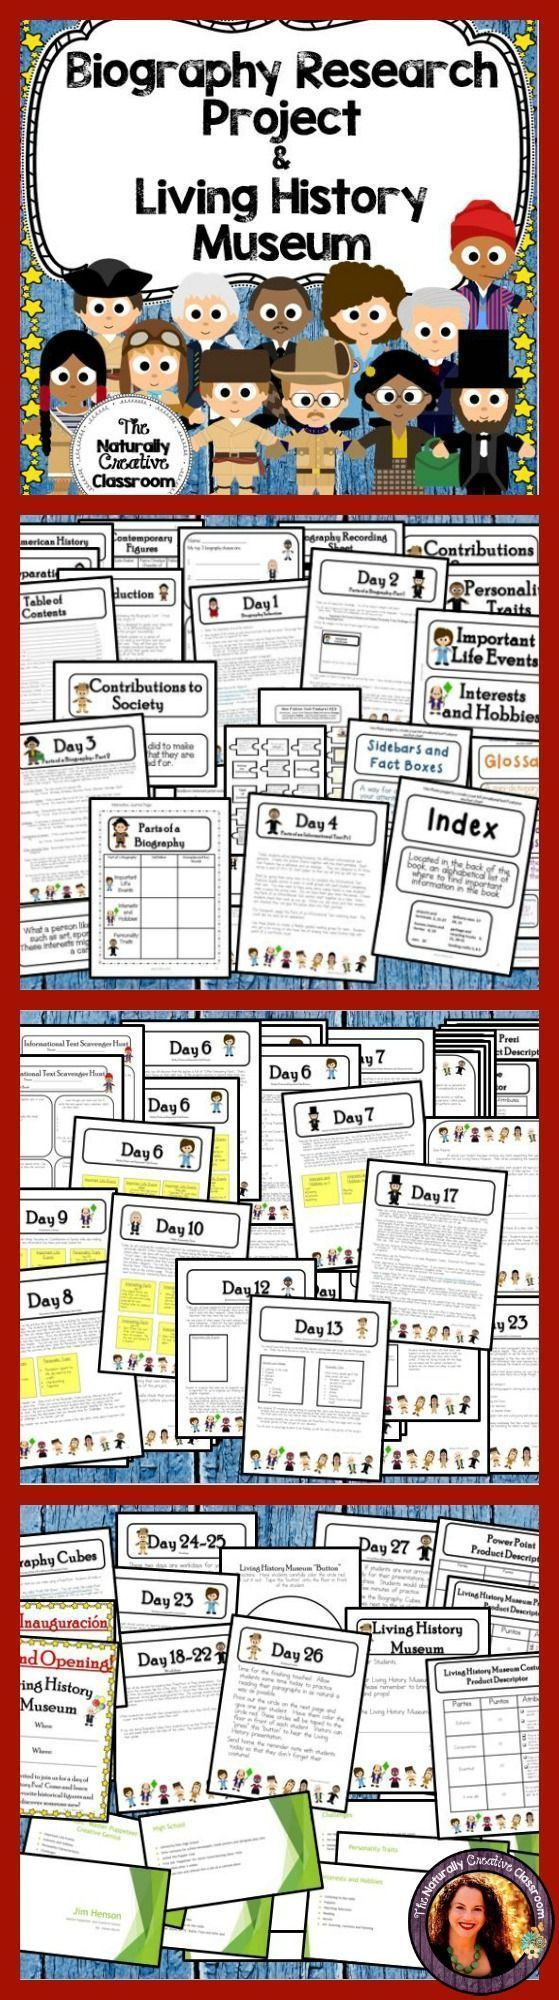 11 Research Project Strategies for Second Graders ...